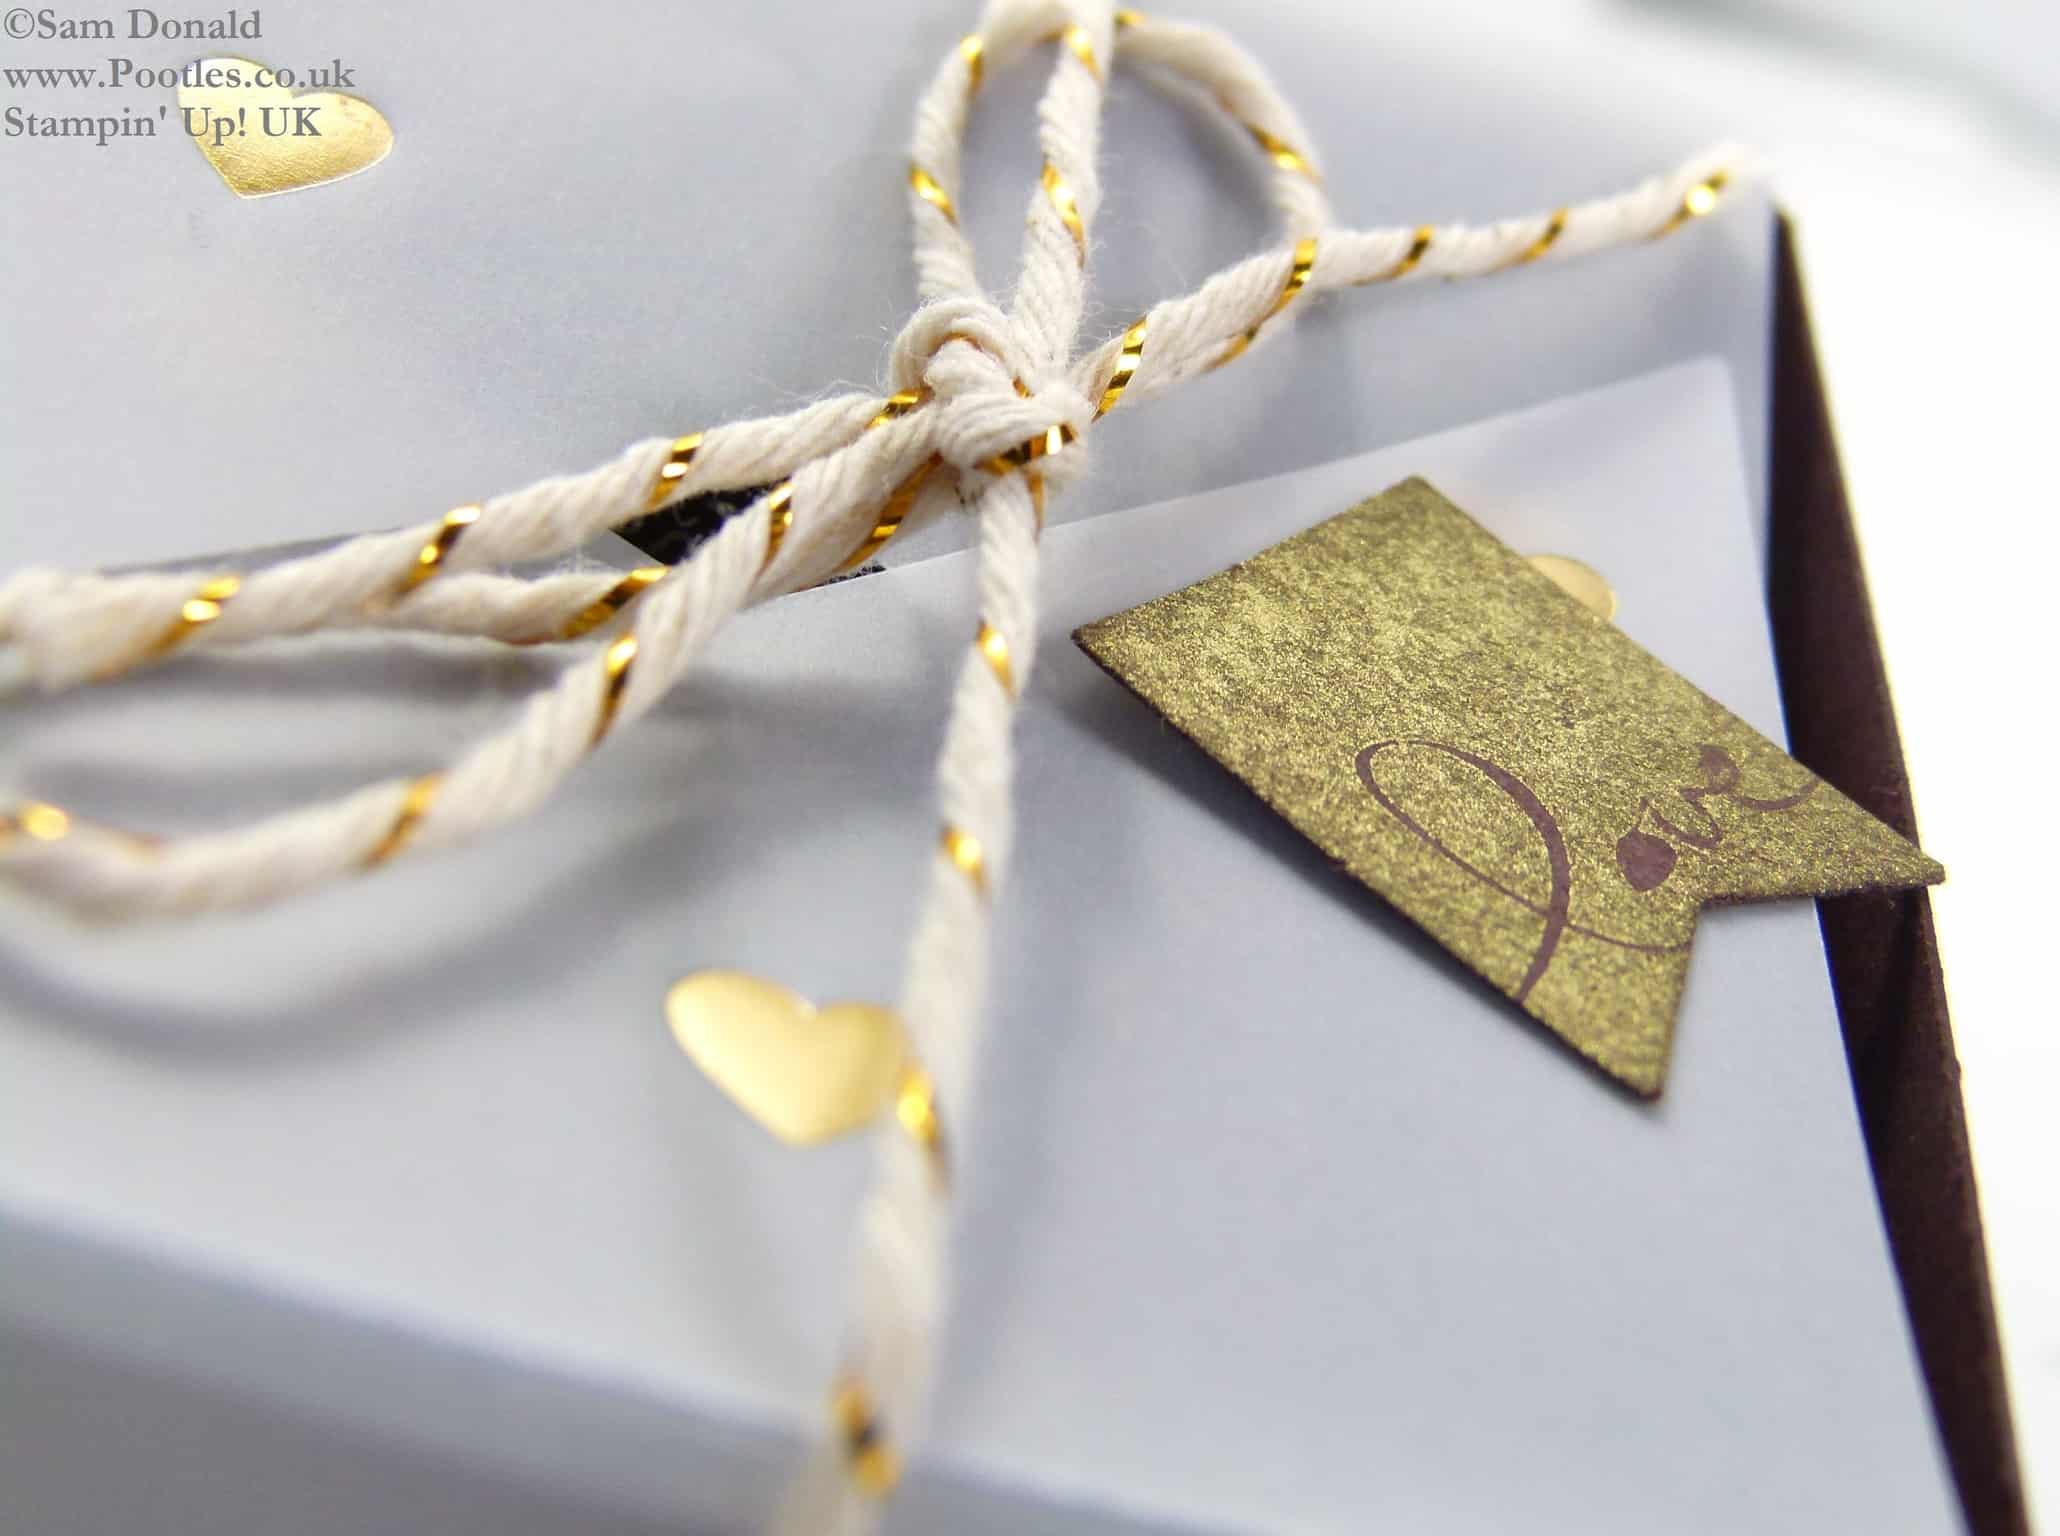 POOTLES Stampin Up UK SPRINGWATCH Folded Vellum Chocolate Truffle Box Tutorial 2